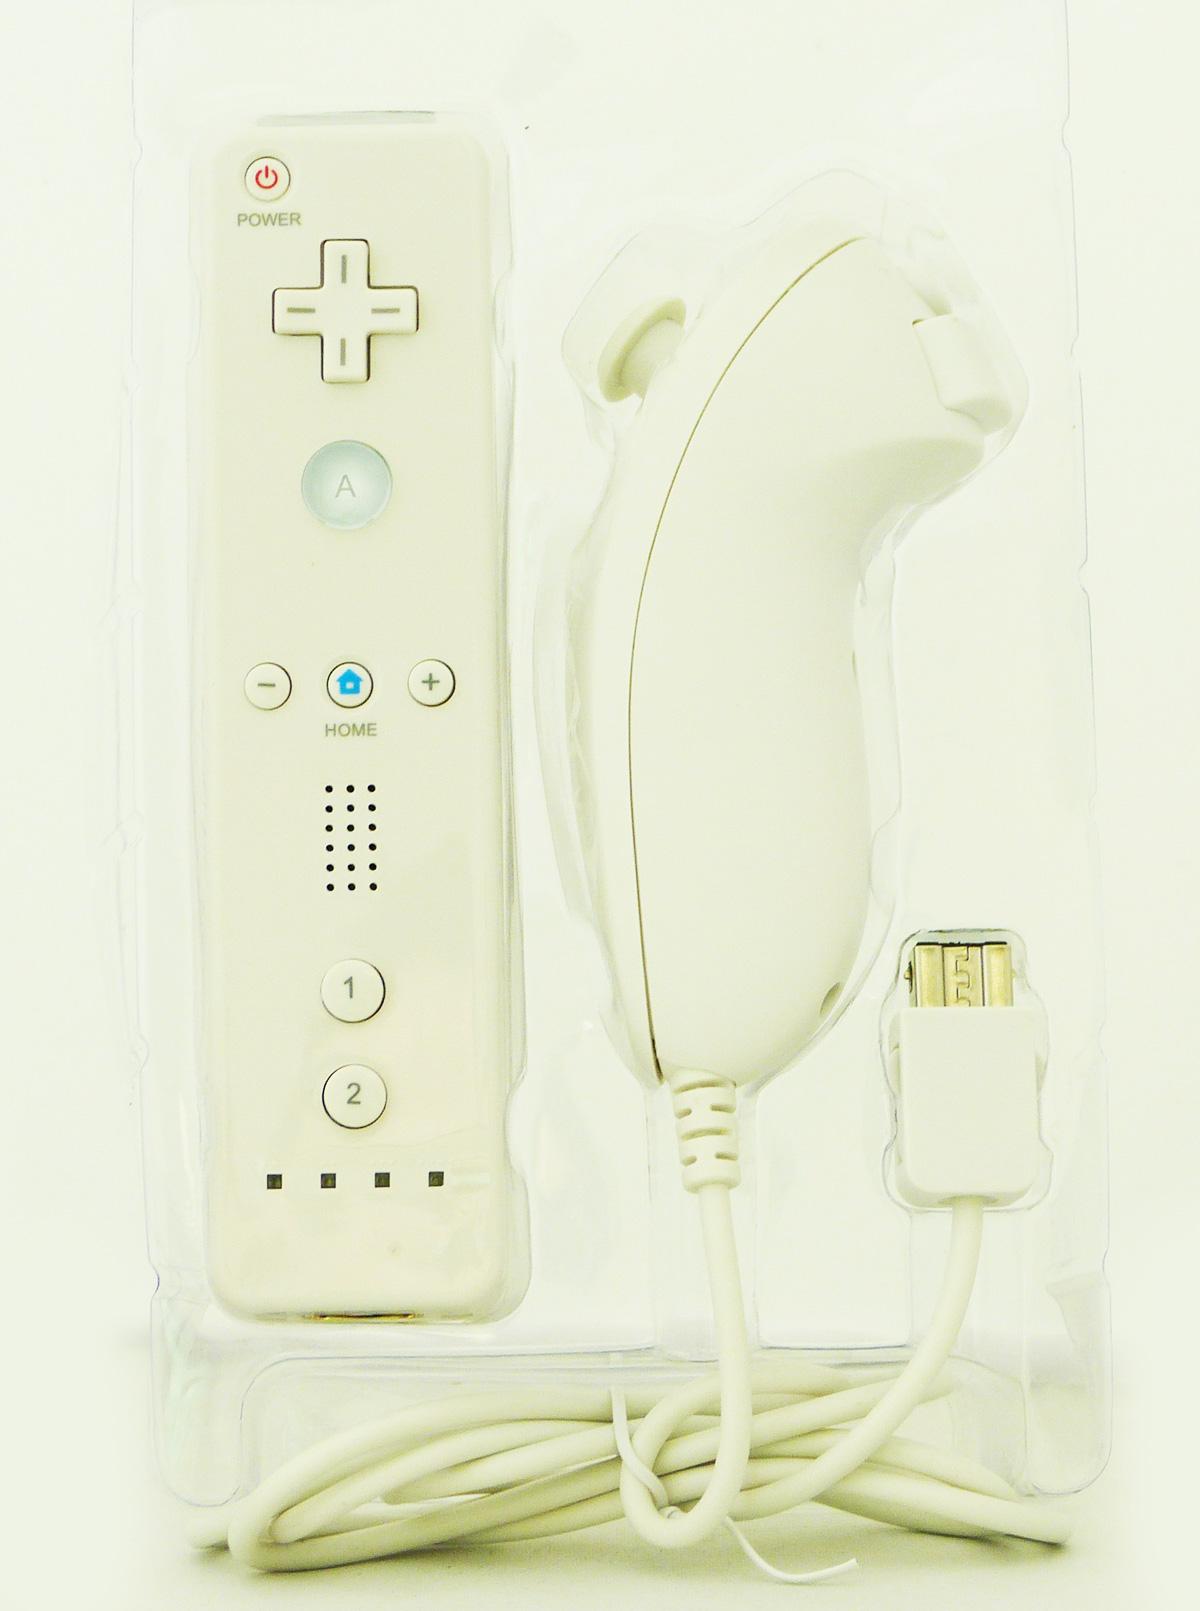 how to set up a new wii remote controller